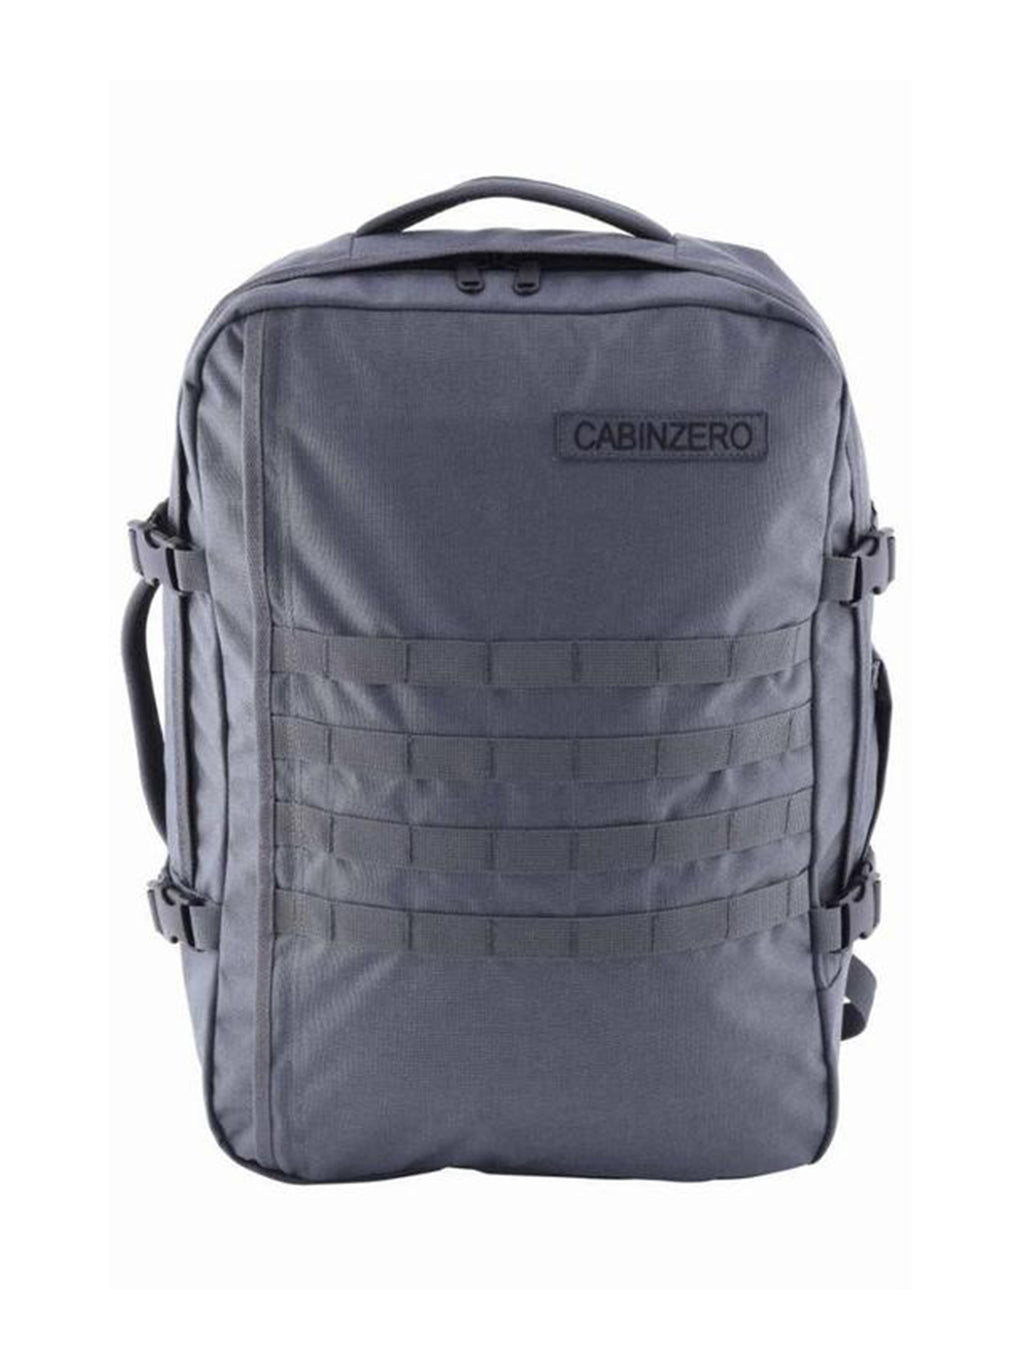 Cabinzero Military 44L in Military Grey Color - This Is For Him